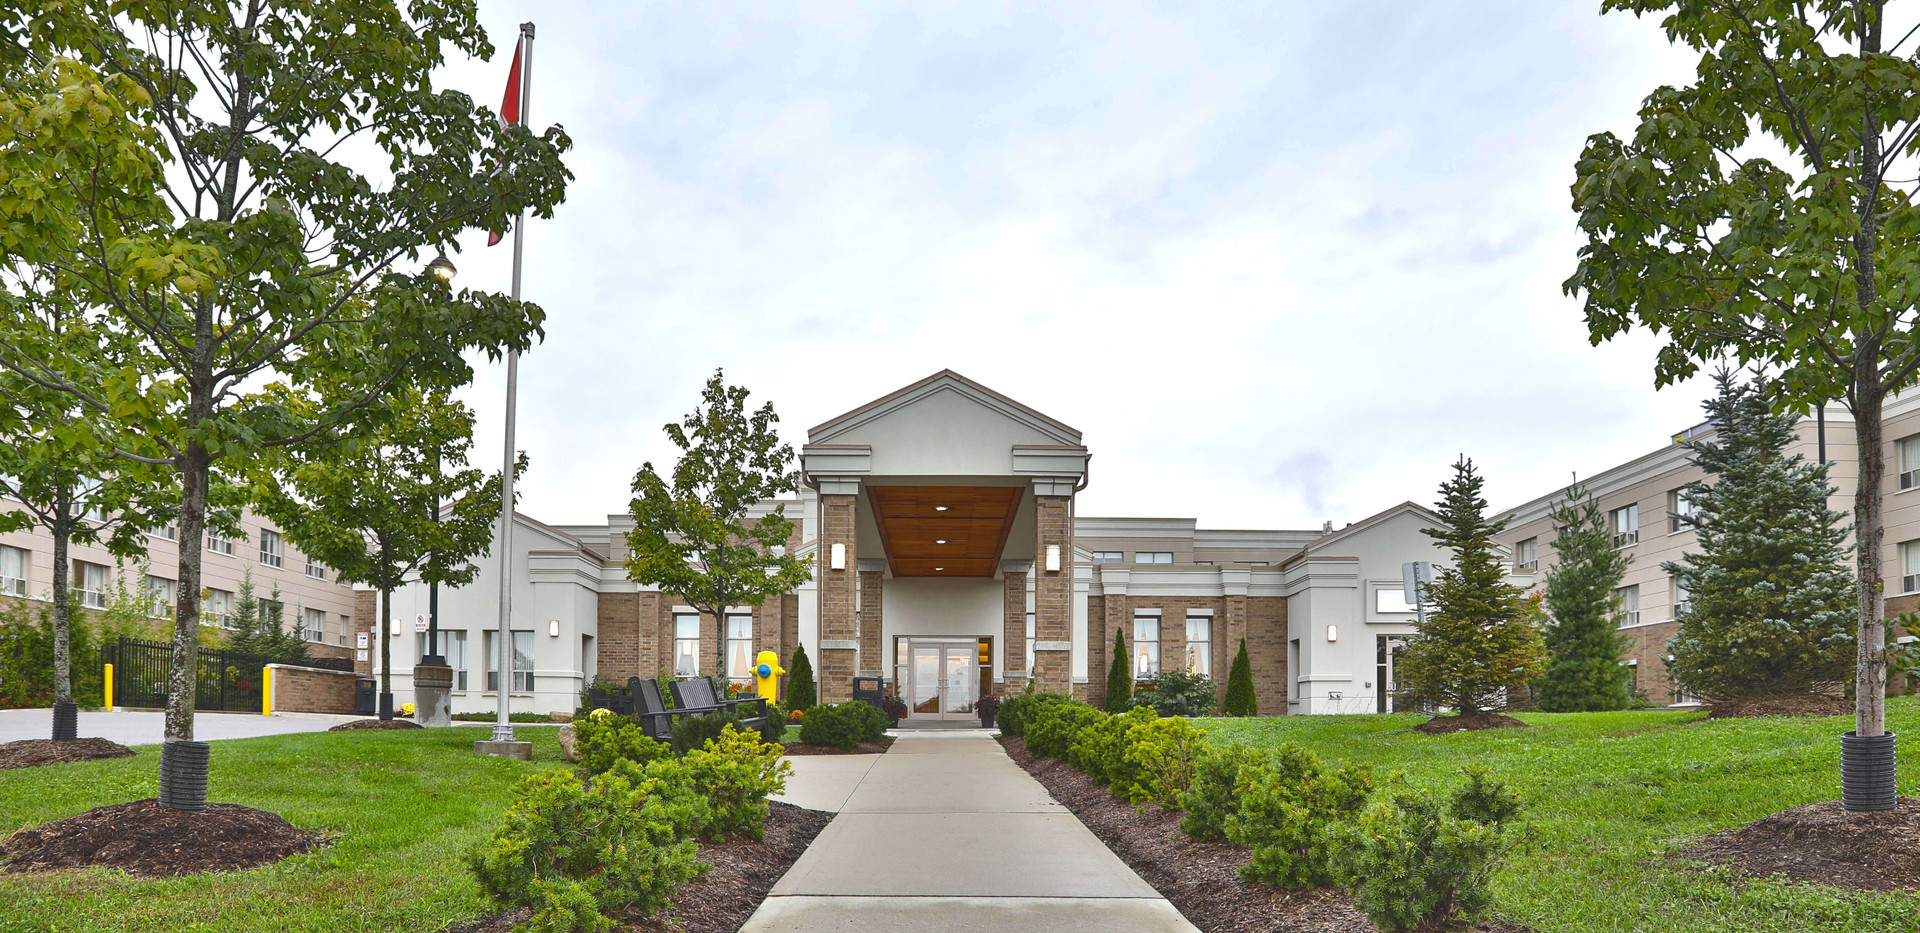 entrance to henley place assisted living facility